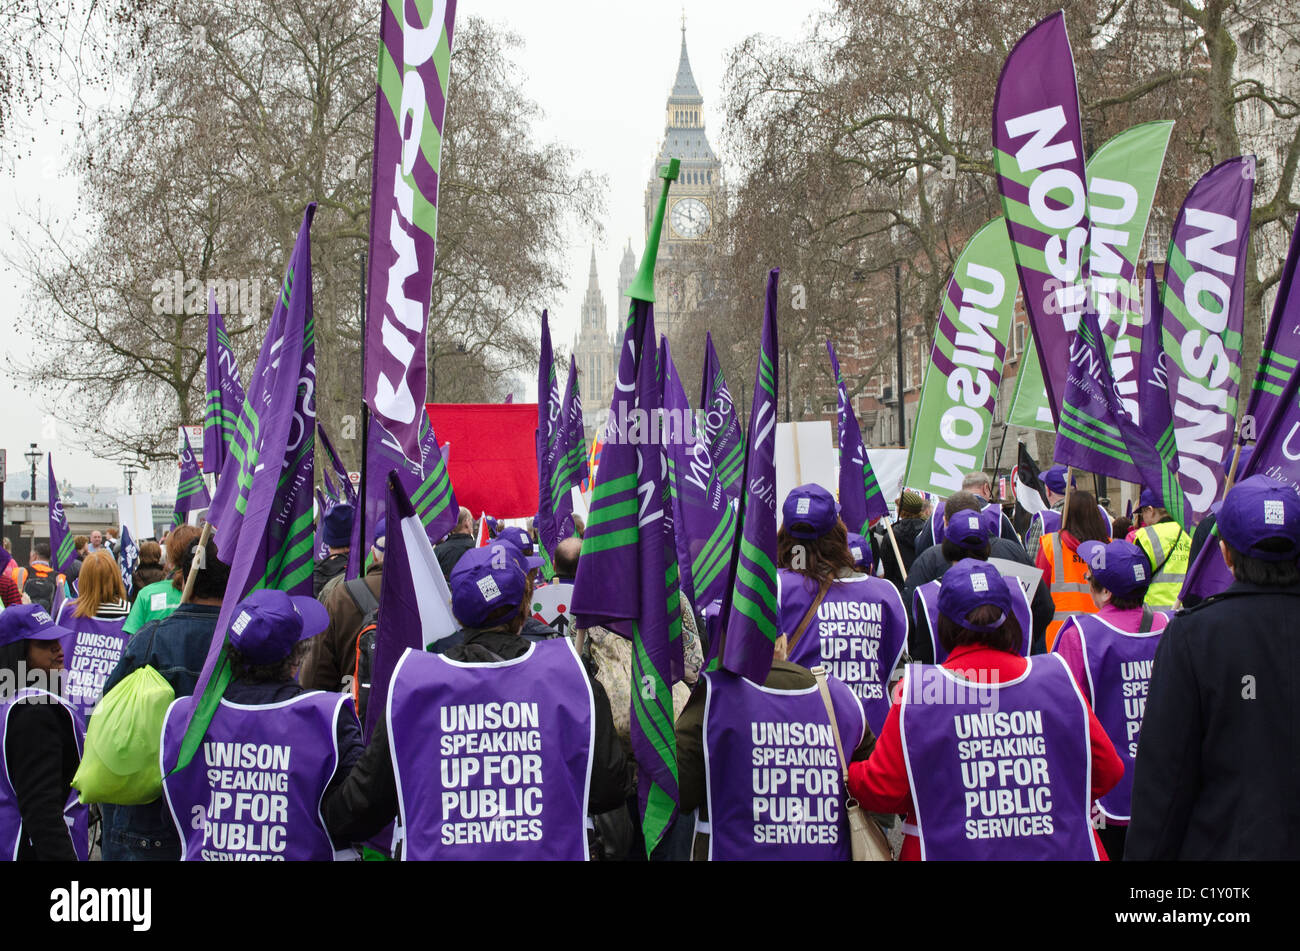 Unison Public Services union approach Parliament TUC 'March For the Alternative' against Coalition Government - Stock Image